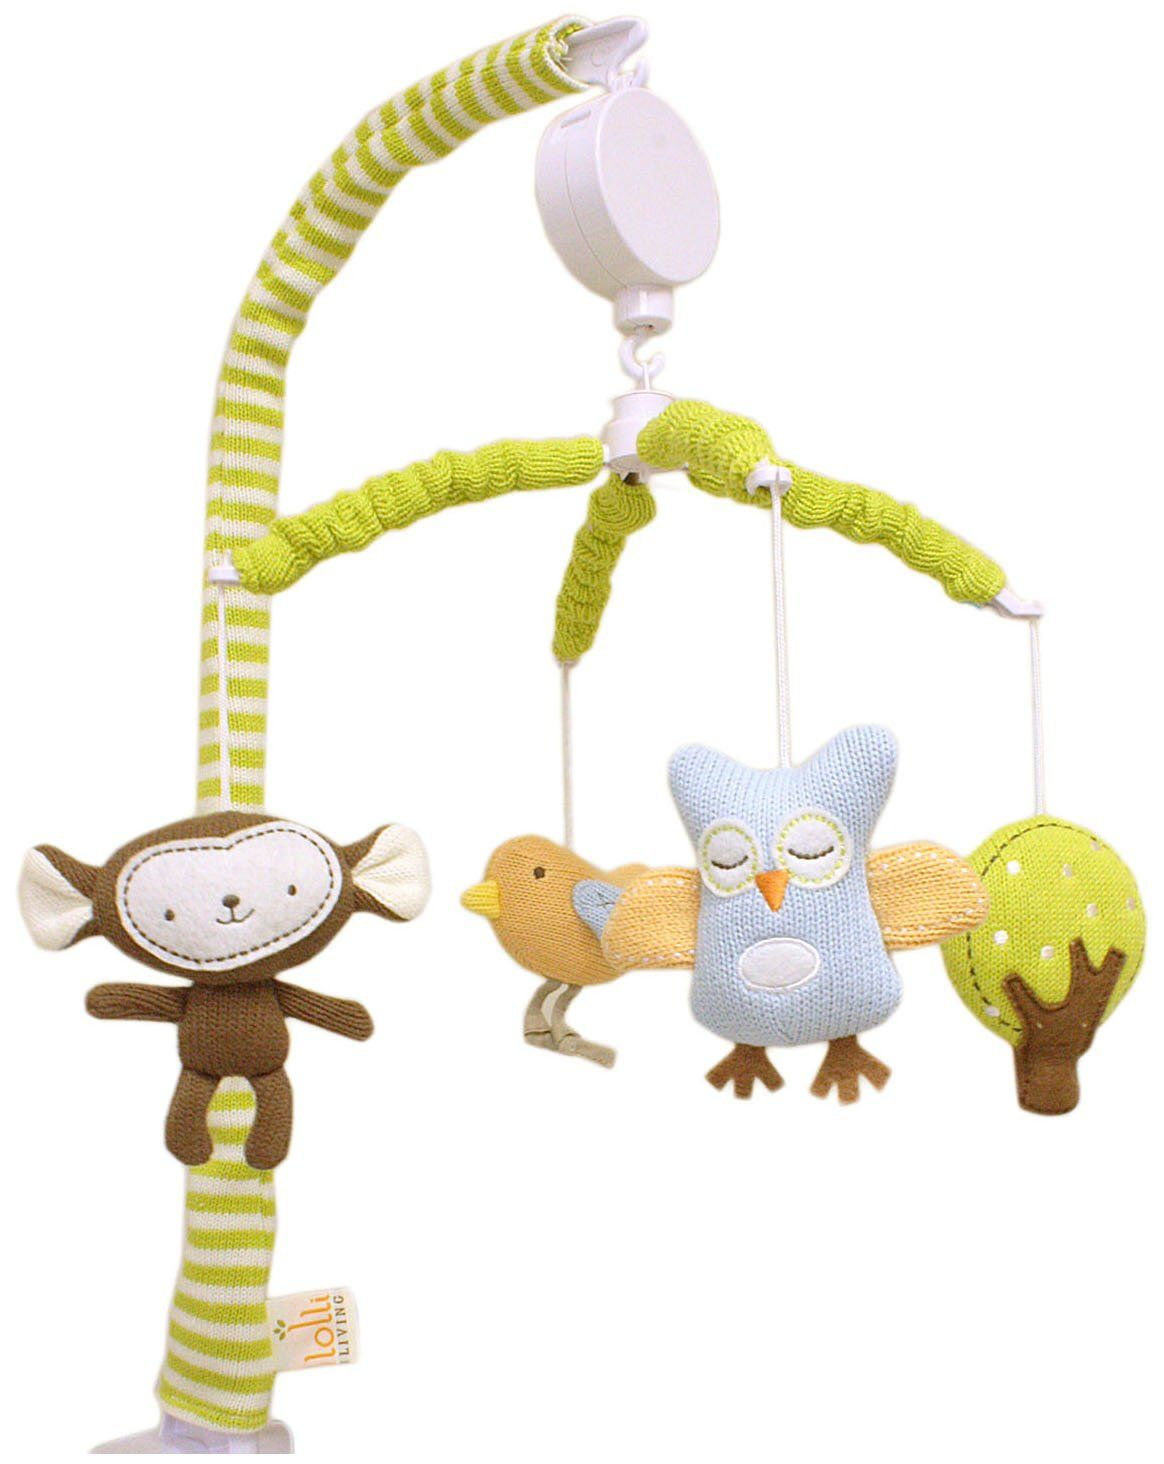 Beautiful Lolli Living Mobile   Monkey    Got This For My Little Guy!